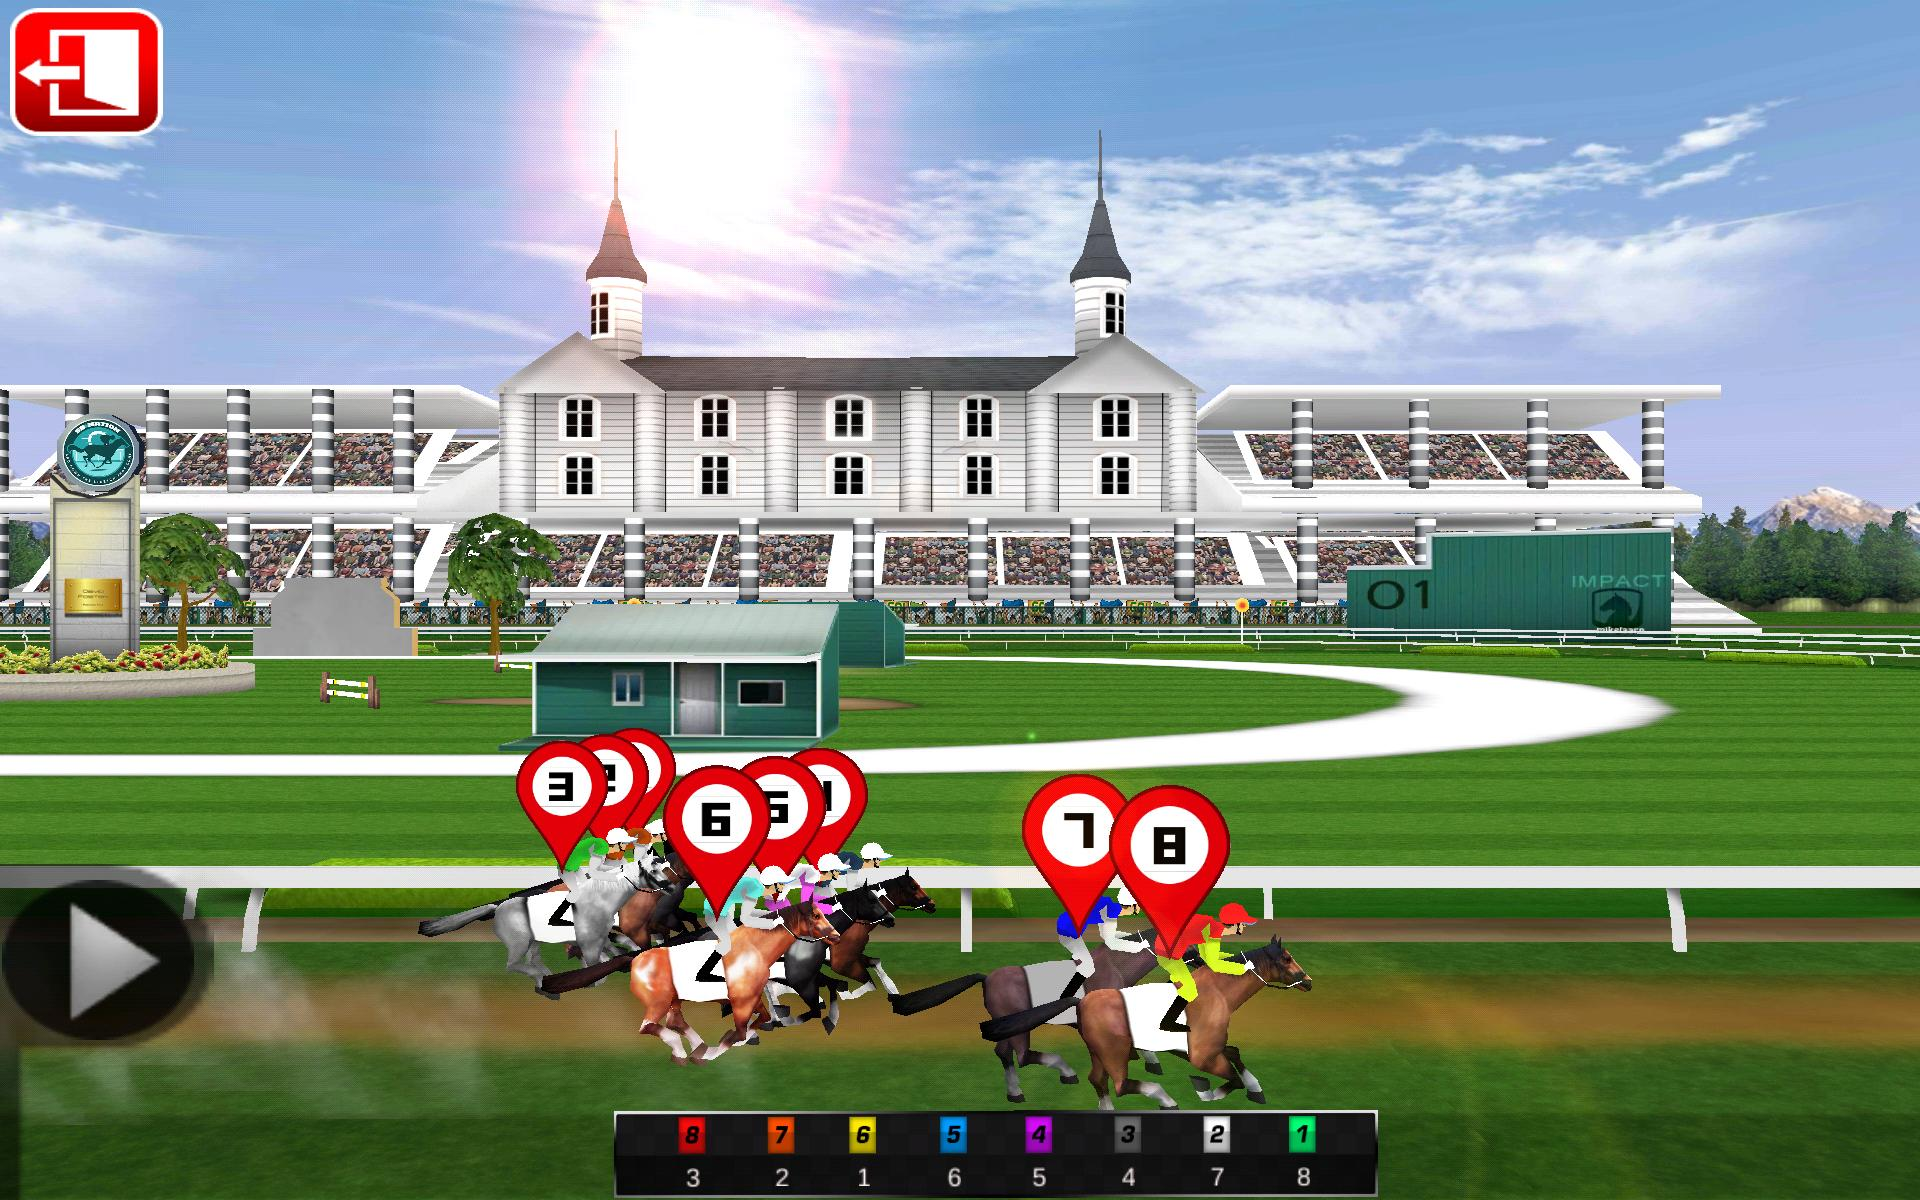 Horse racing betting simulation games how to earn bitcoins by watching videos from pc